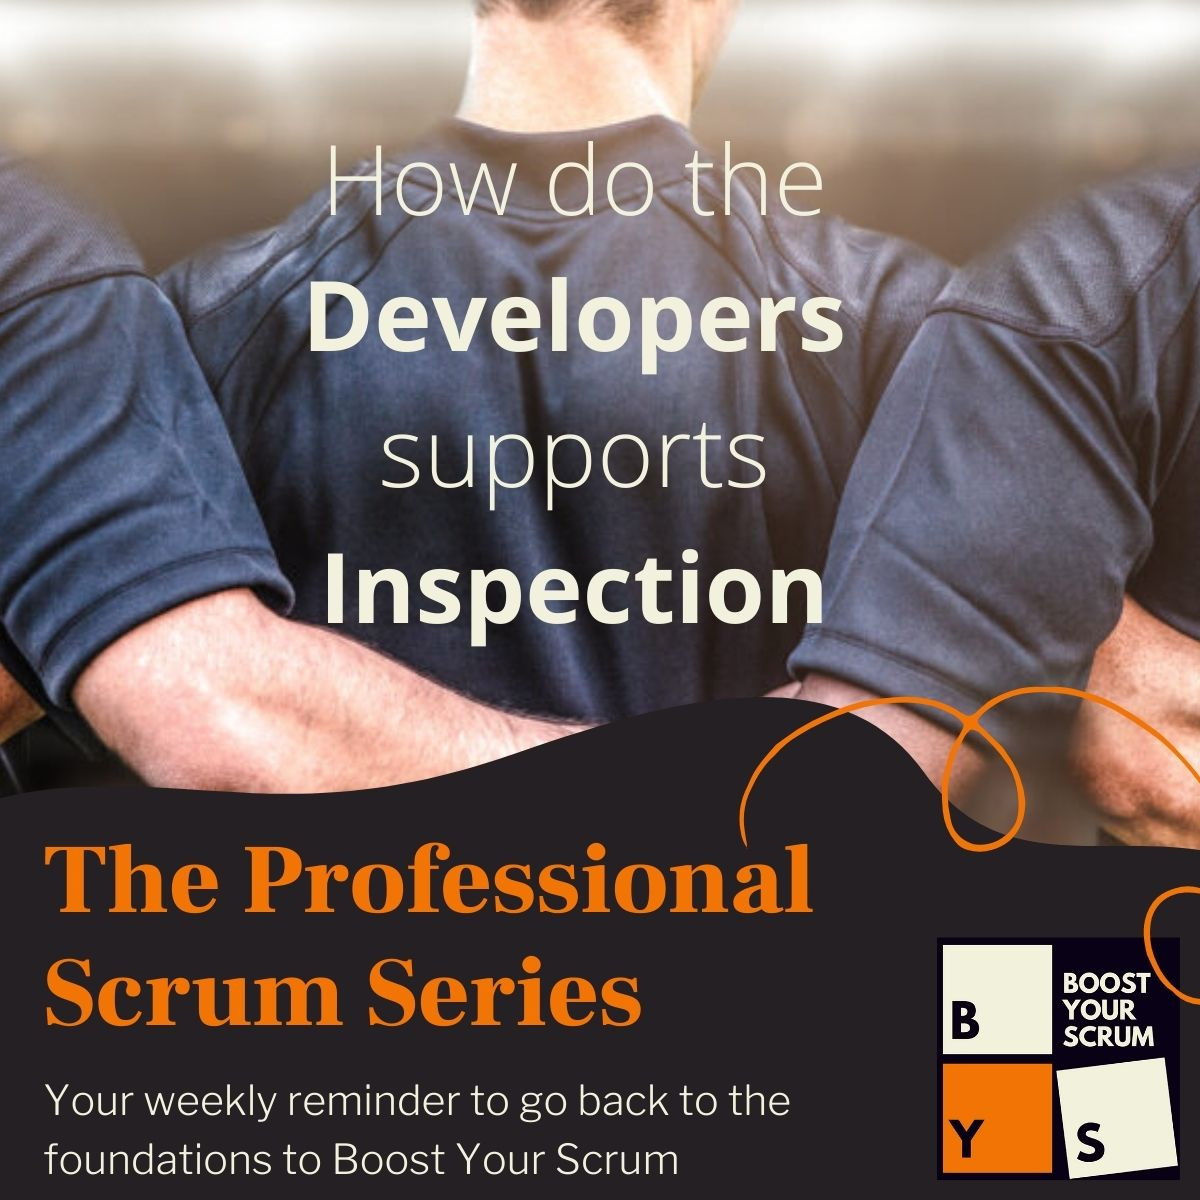 How do the Developers support Inspection?